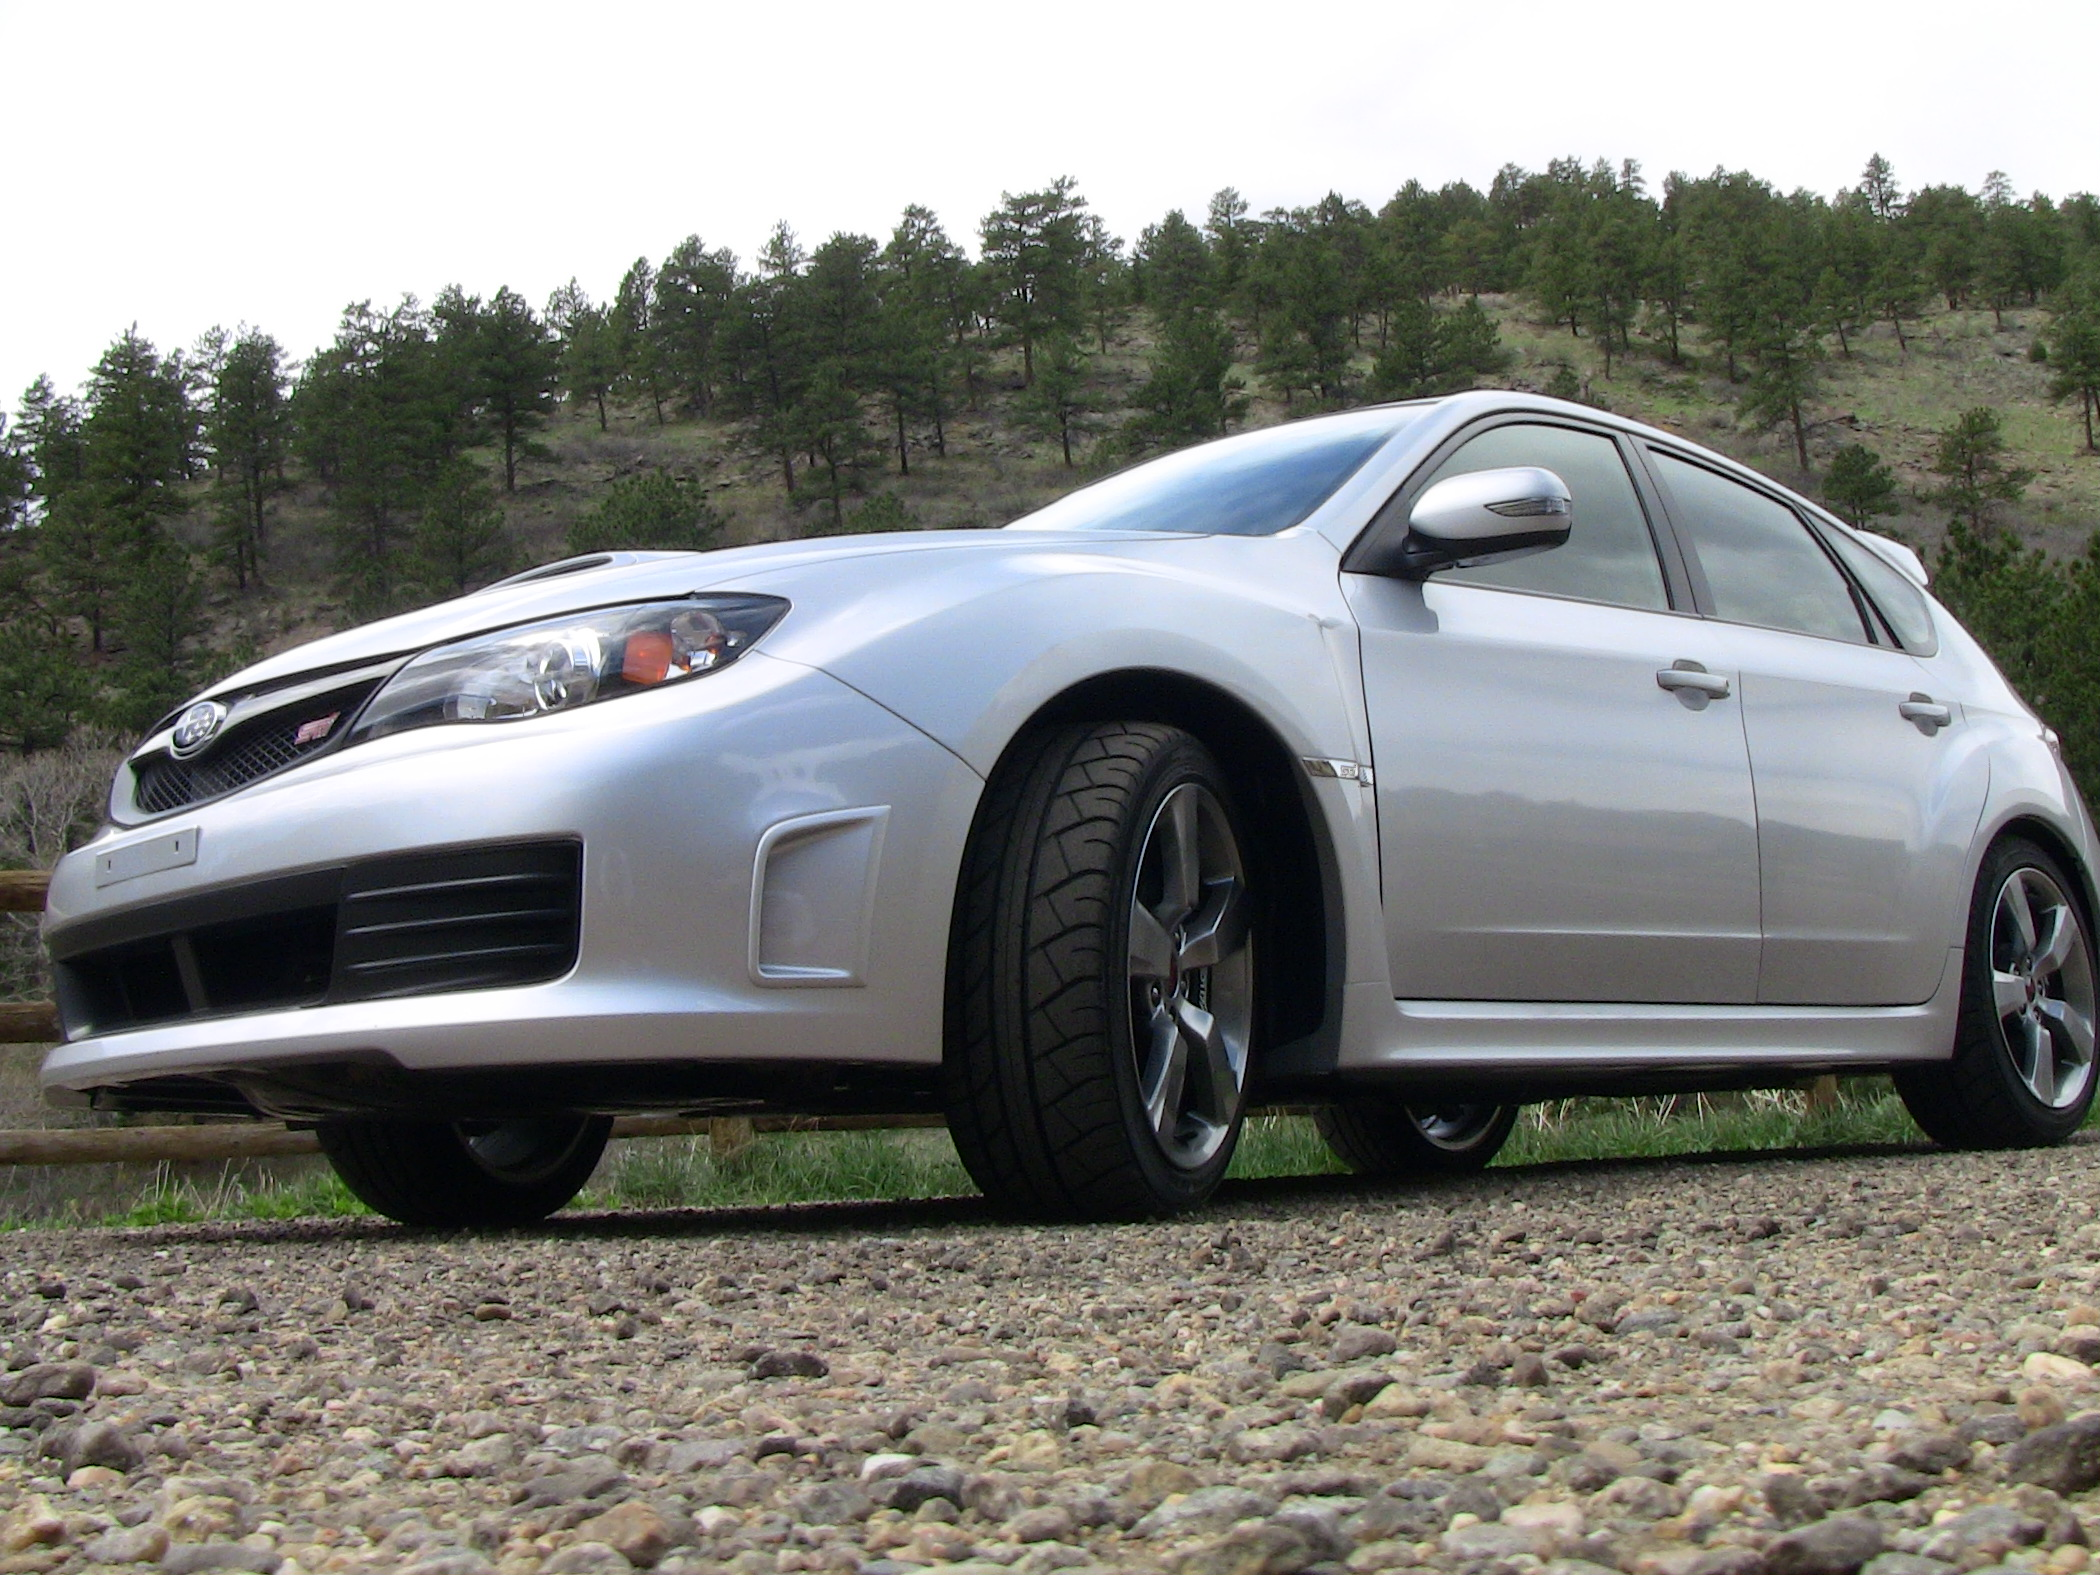 Weekly Drive 2010 Subaru WRX STI Is that a rocket in your pocket